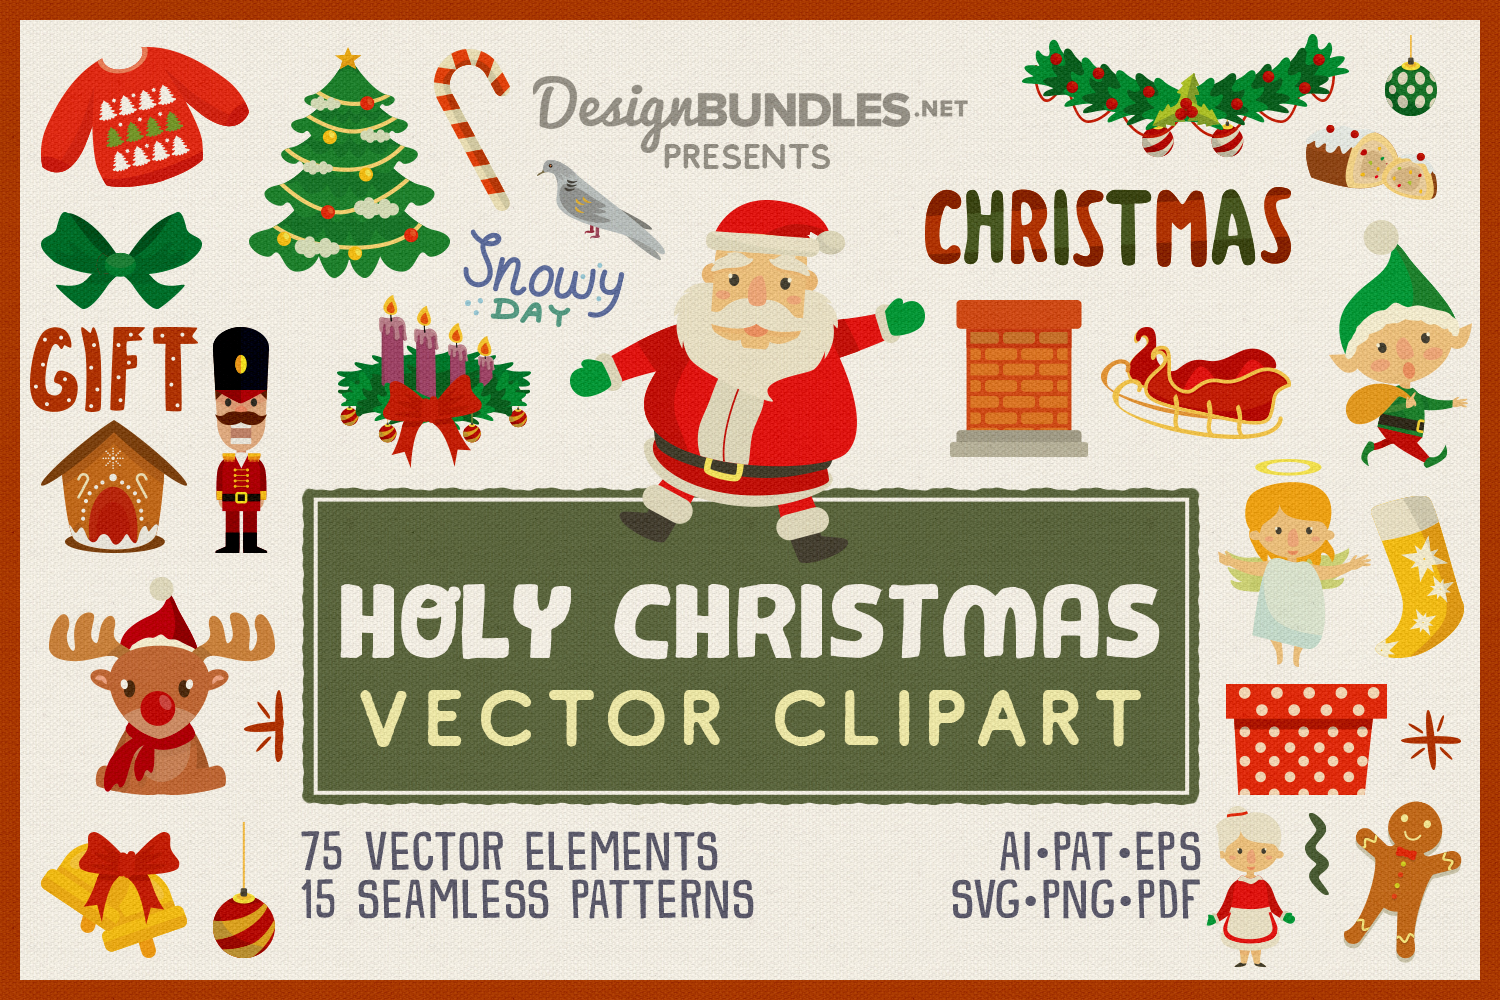 Holy Christmas Vector Clipart and Seamless Pattern example image 1